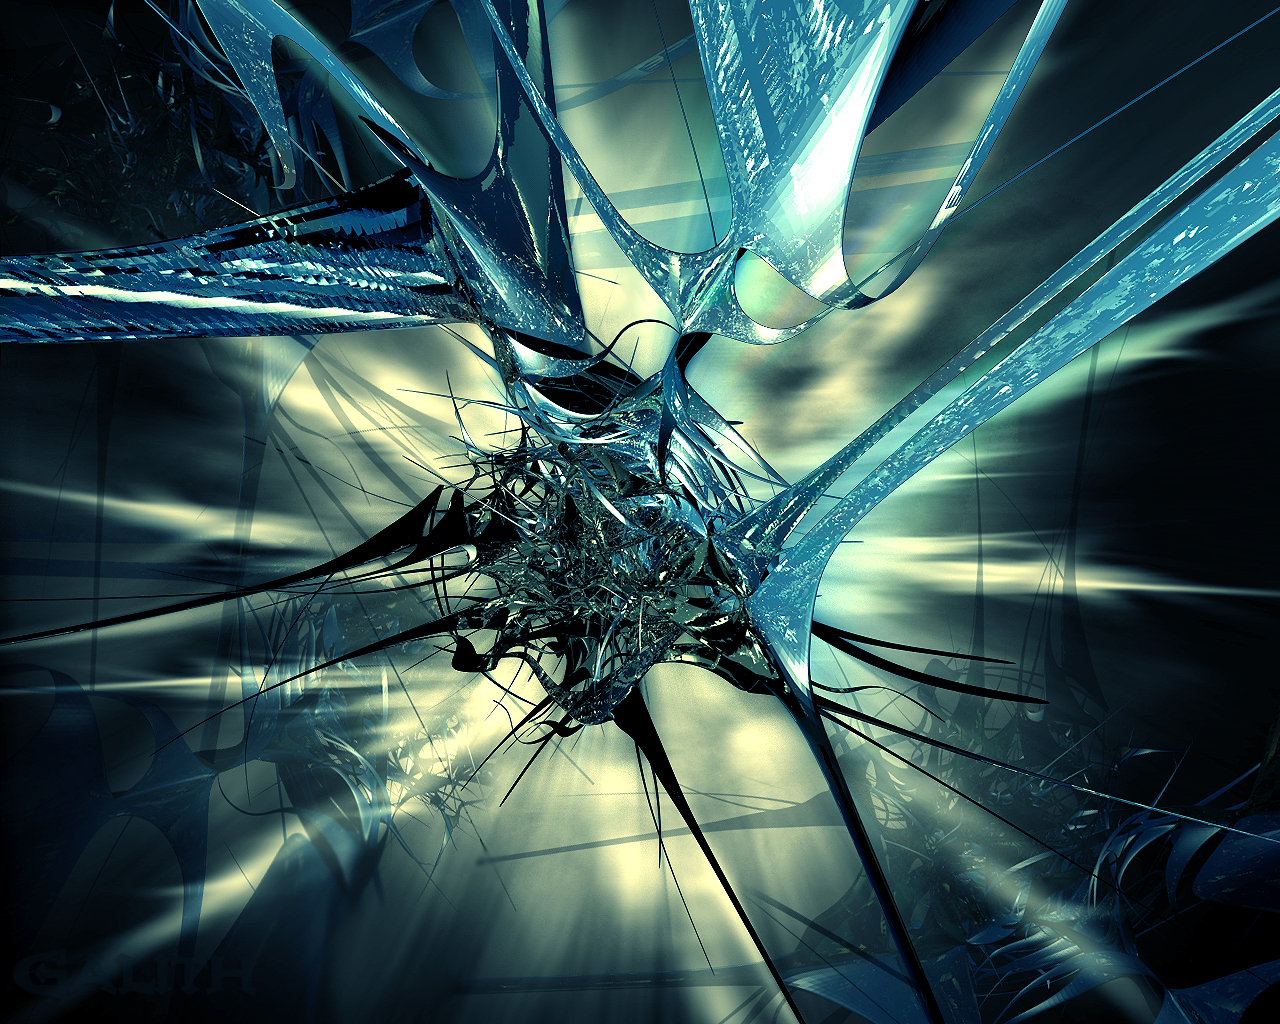 Amazing 3D Abstract Artwork